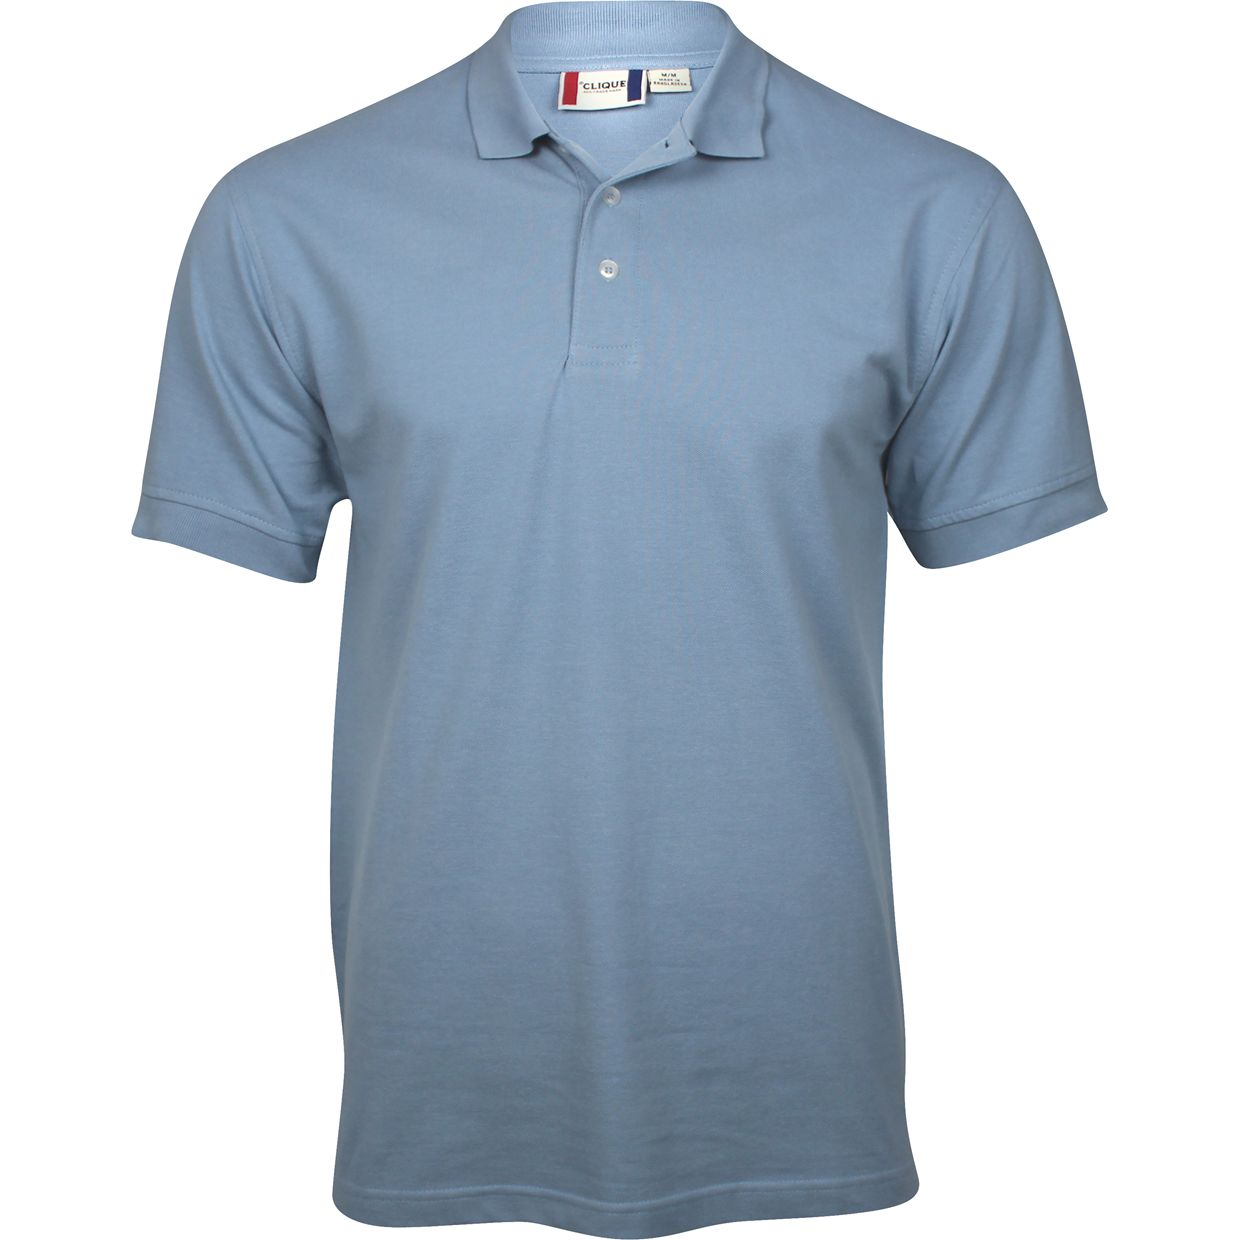 Clique by cutter buck lincoln polo shirt at for Cutter buck polo shirt size chart